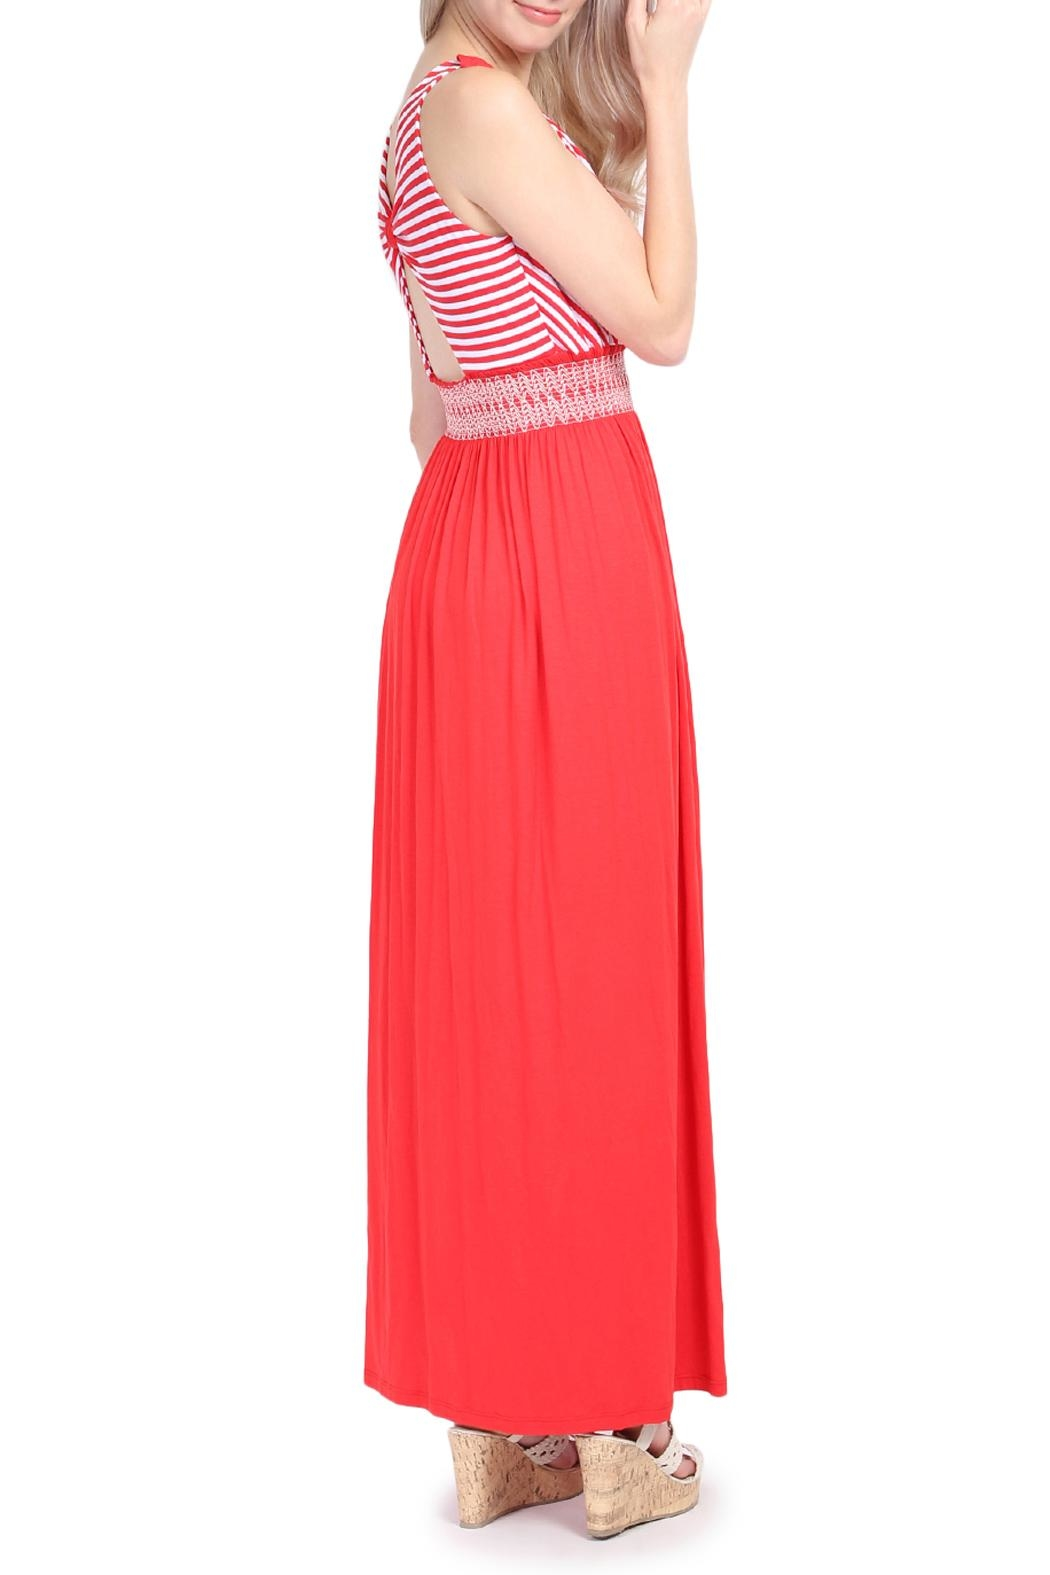 Riah Fashion Sleeveless Maxi Dress - Side Cropped Image